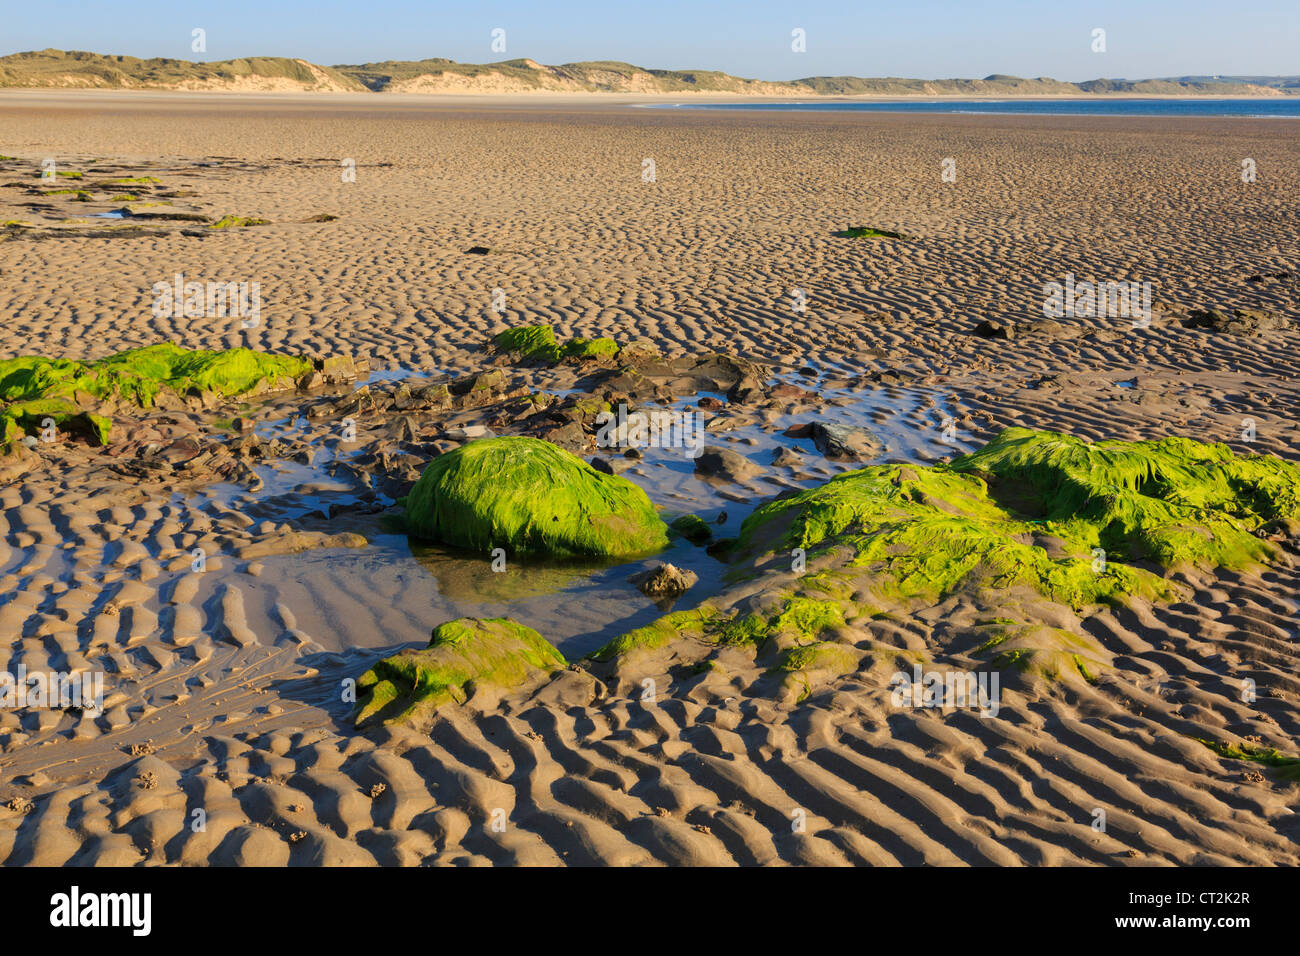 Mossy rocks in the rippled sand on the beach in Dunnet Bay at low tide in the evening at Dunnet Caithness Scotland - Stock Image